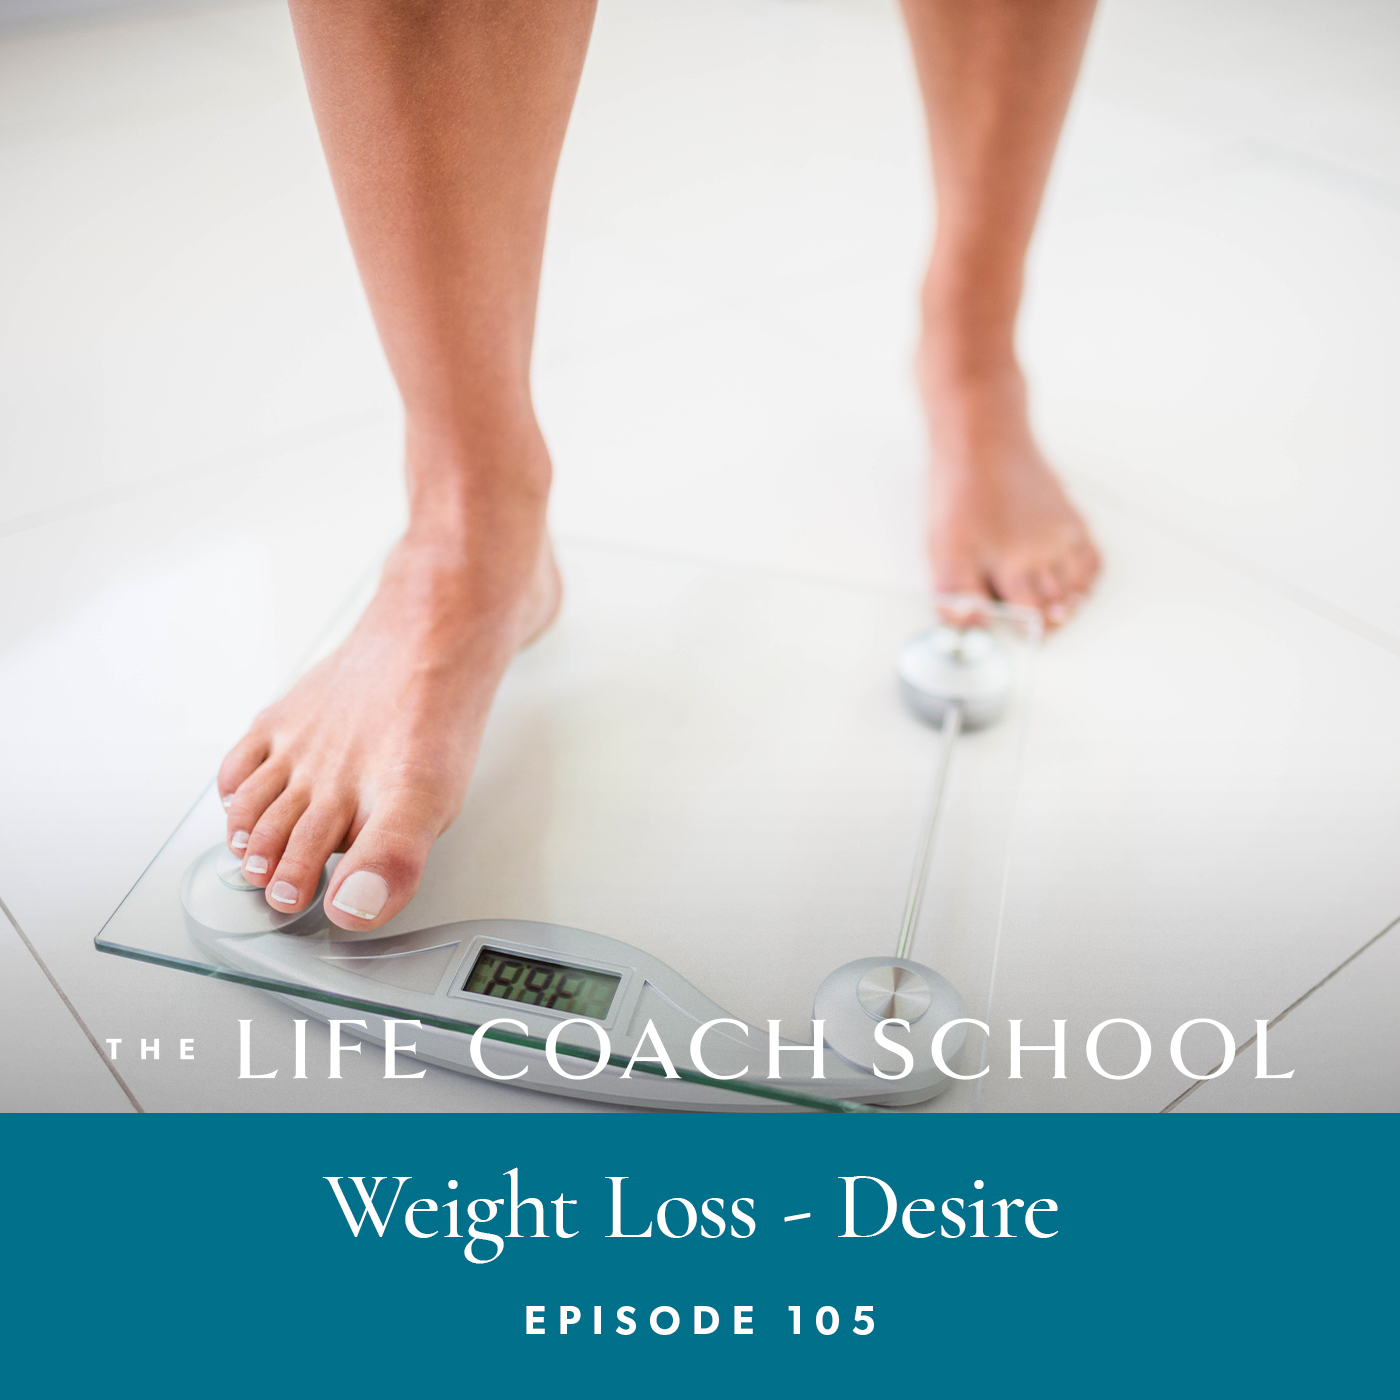 The Life Coach School Podcast with Brooke Castillo | Episode 105 | Weight Loss – Desire